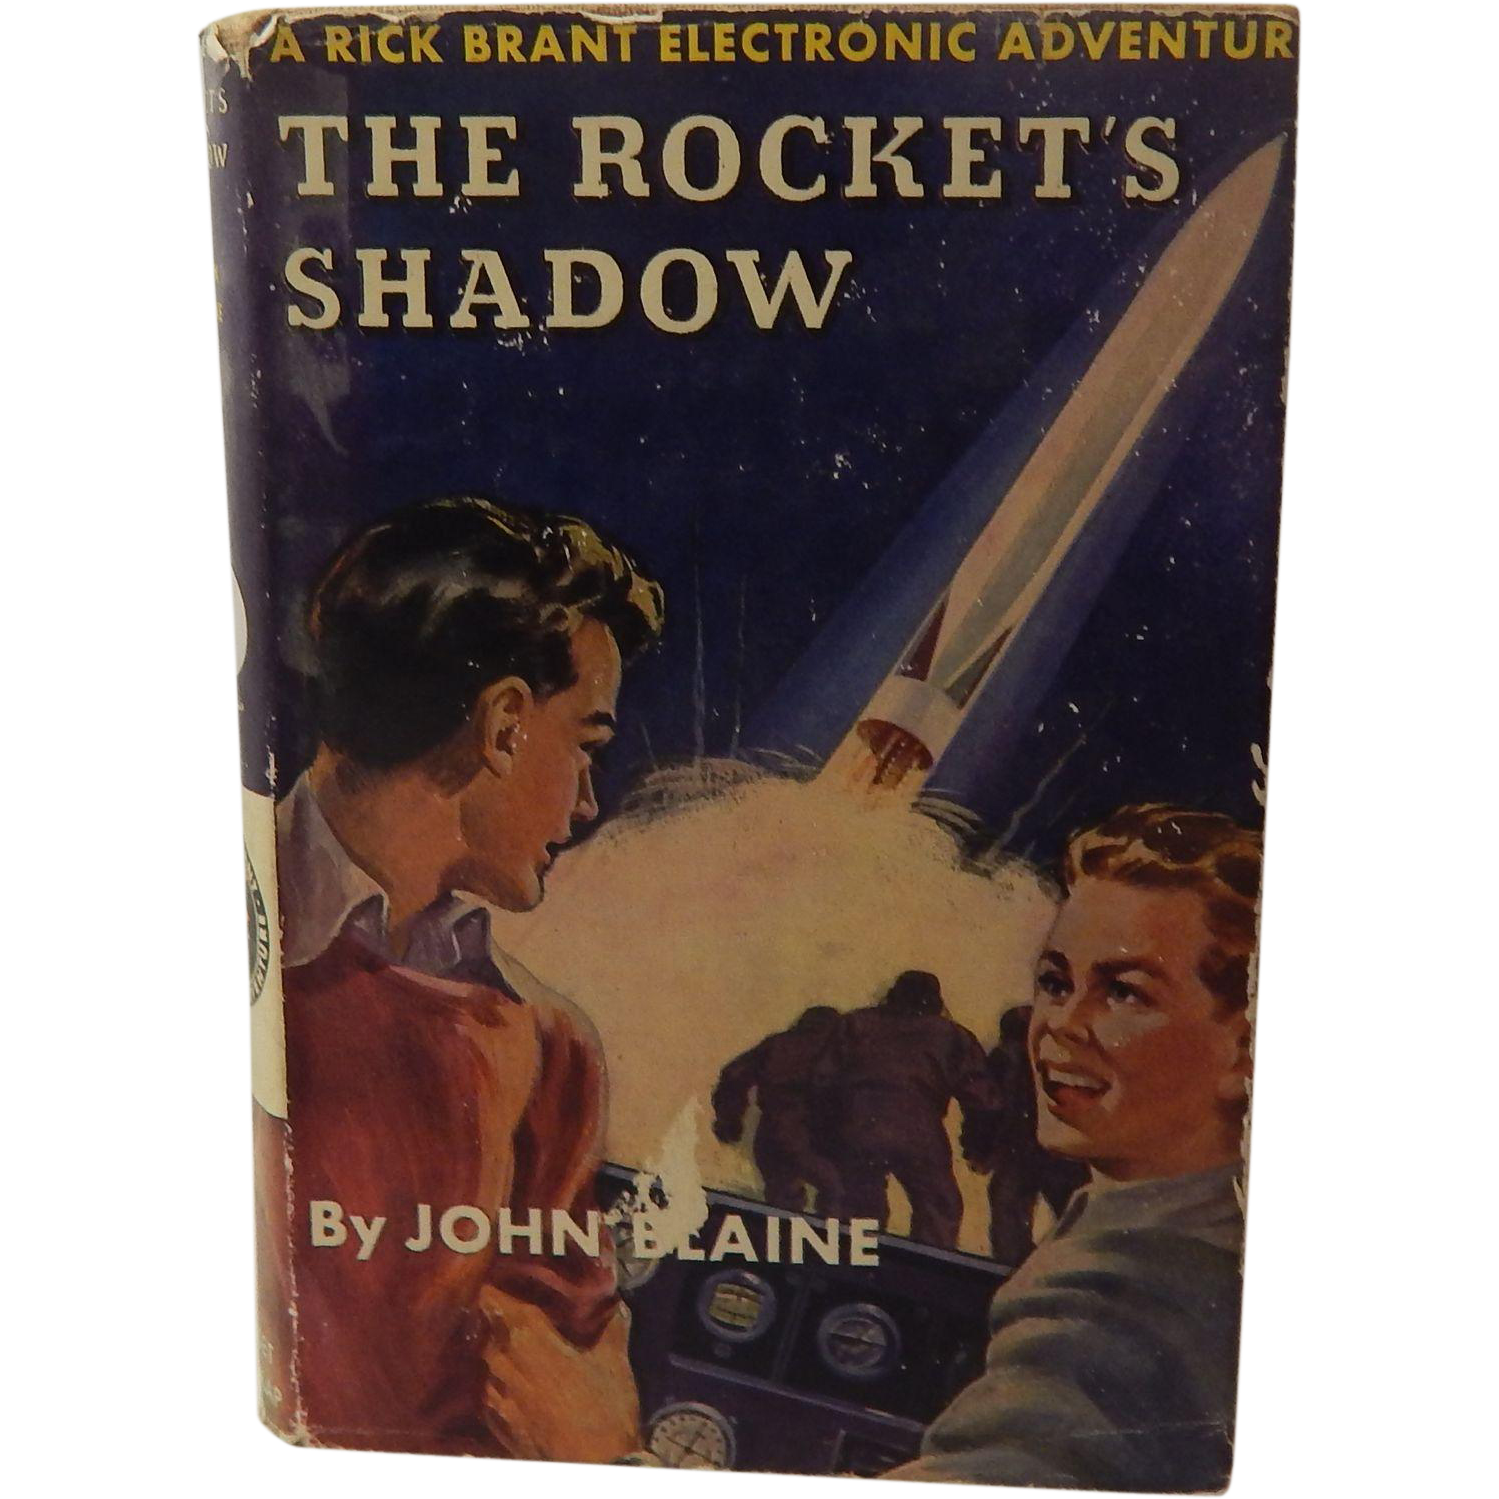 Rick Brant The Rocket's Shadow